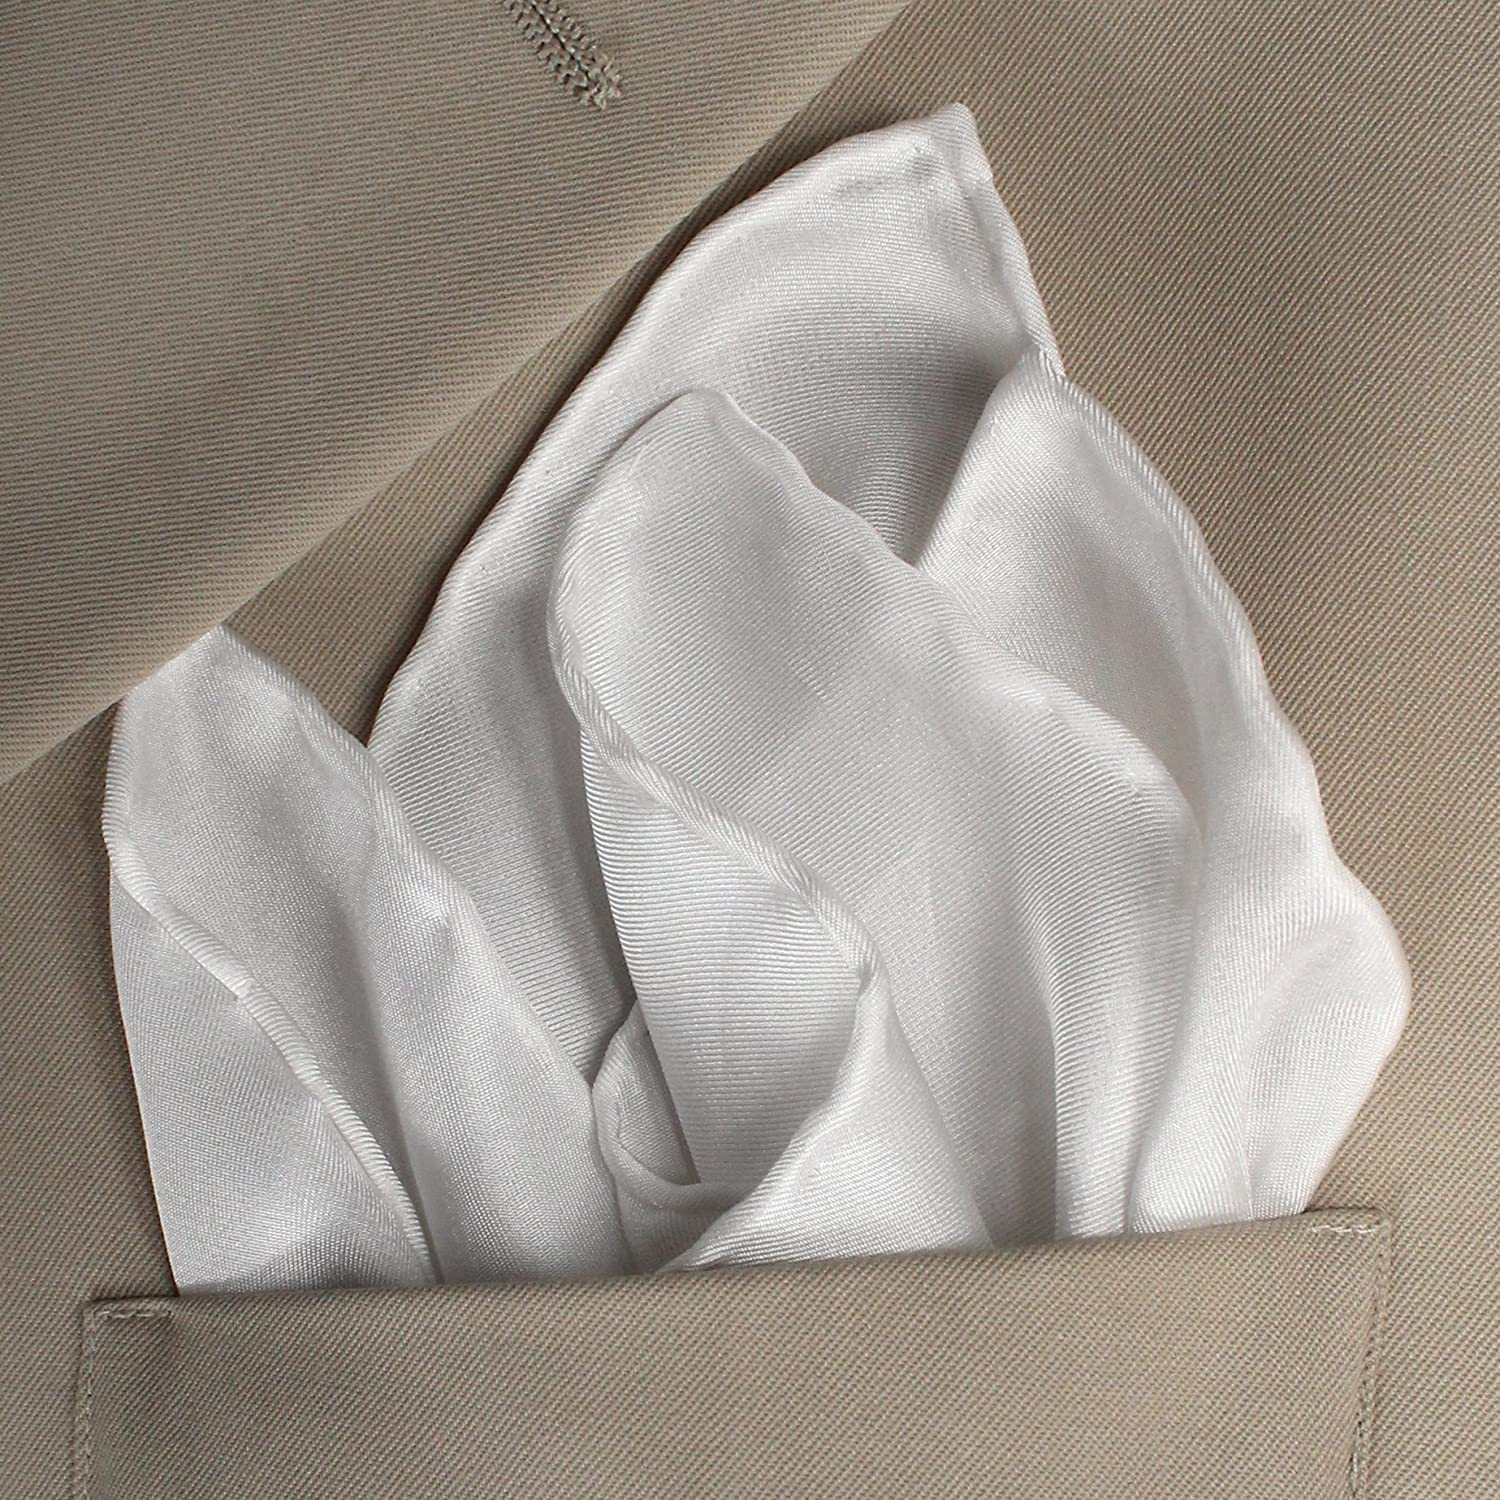 "White Silk Tuxedo Pocket Square with Hand-rolled Edges by ROYAL SILK 17/"" Square"